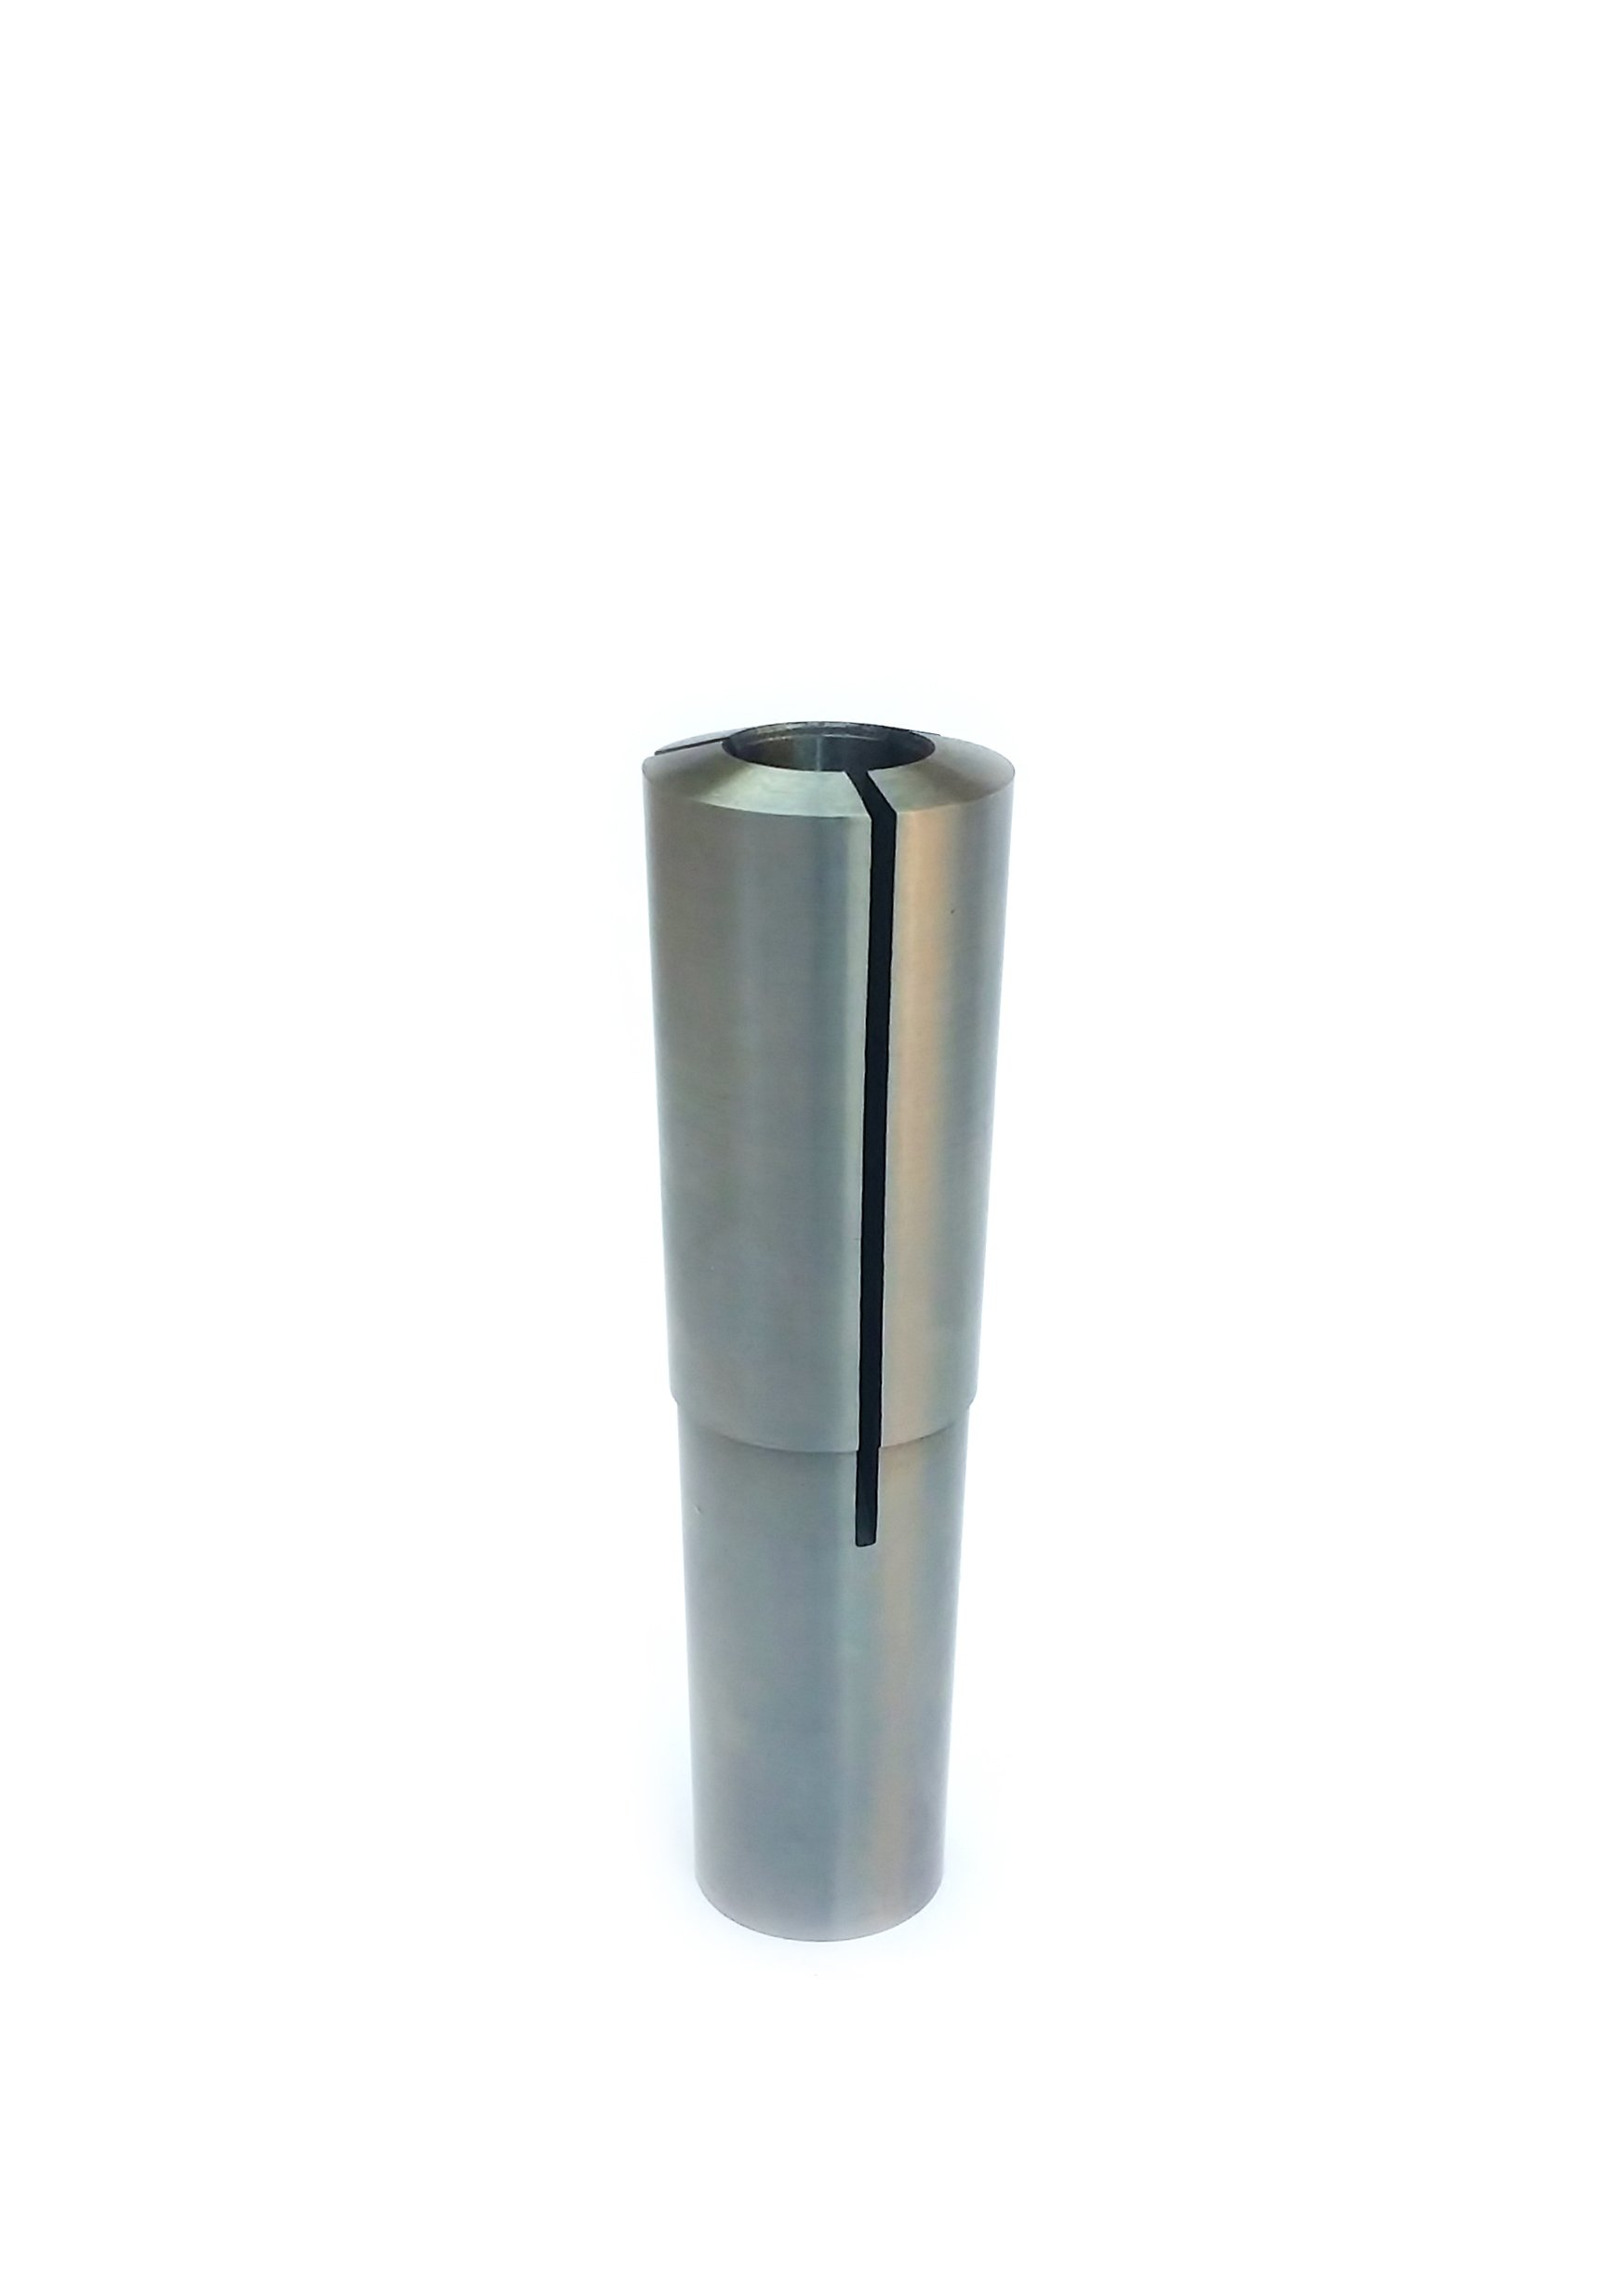 HHIP 3900-0977 B & S #7 Taper Round Collet, 1/2'' by HHIP